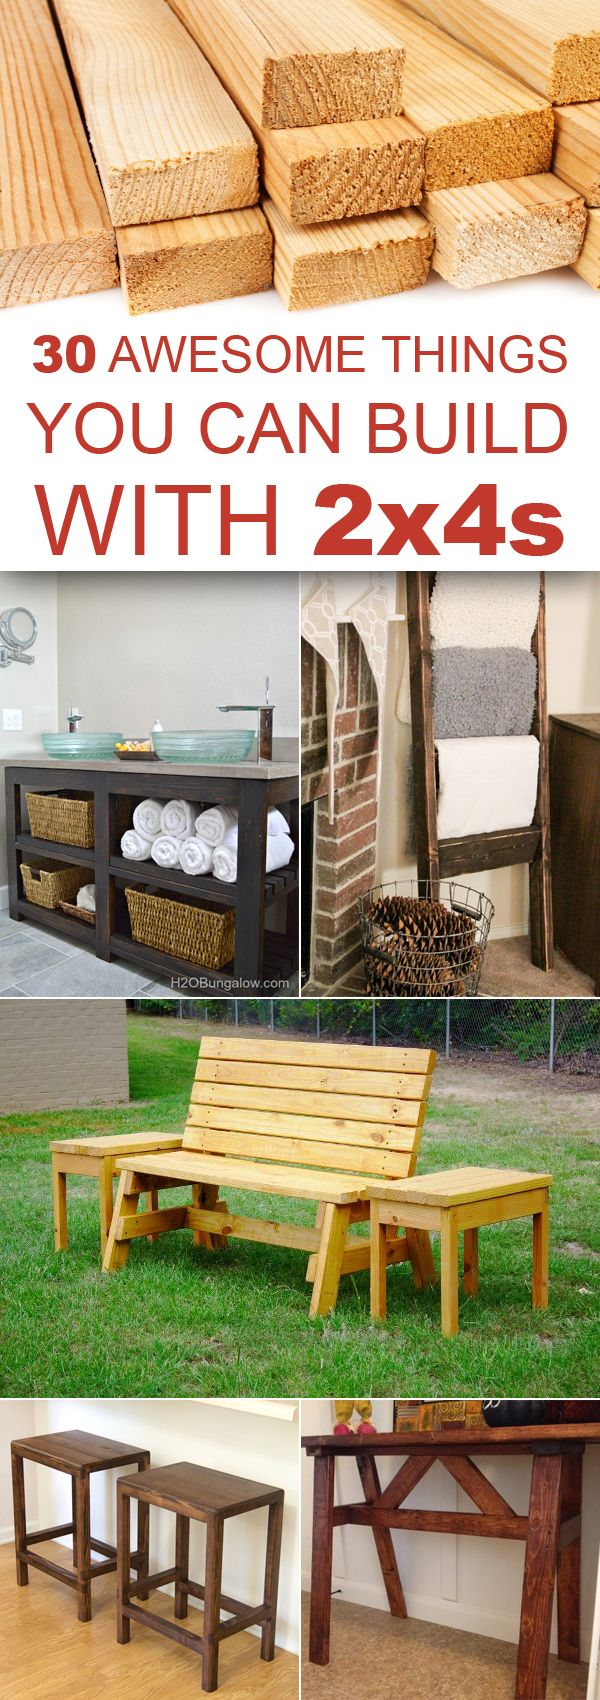 30 Awesome Things You Can Build With 2x4s